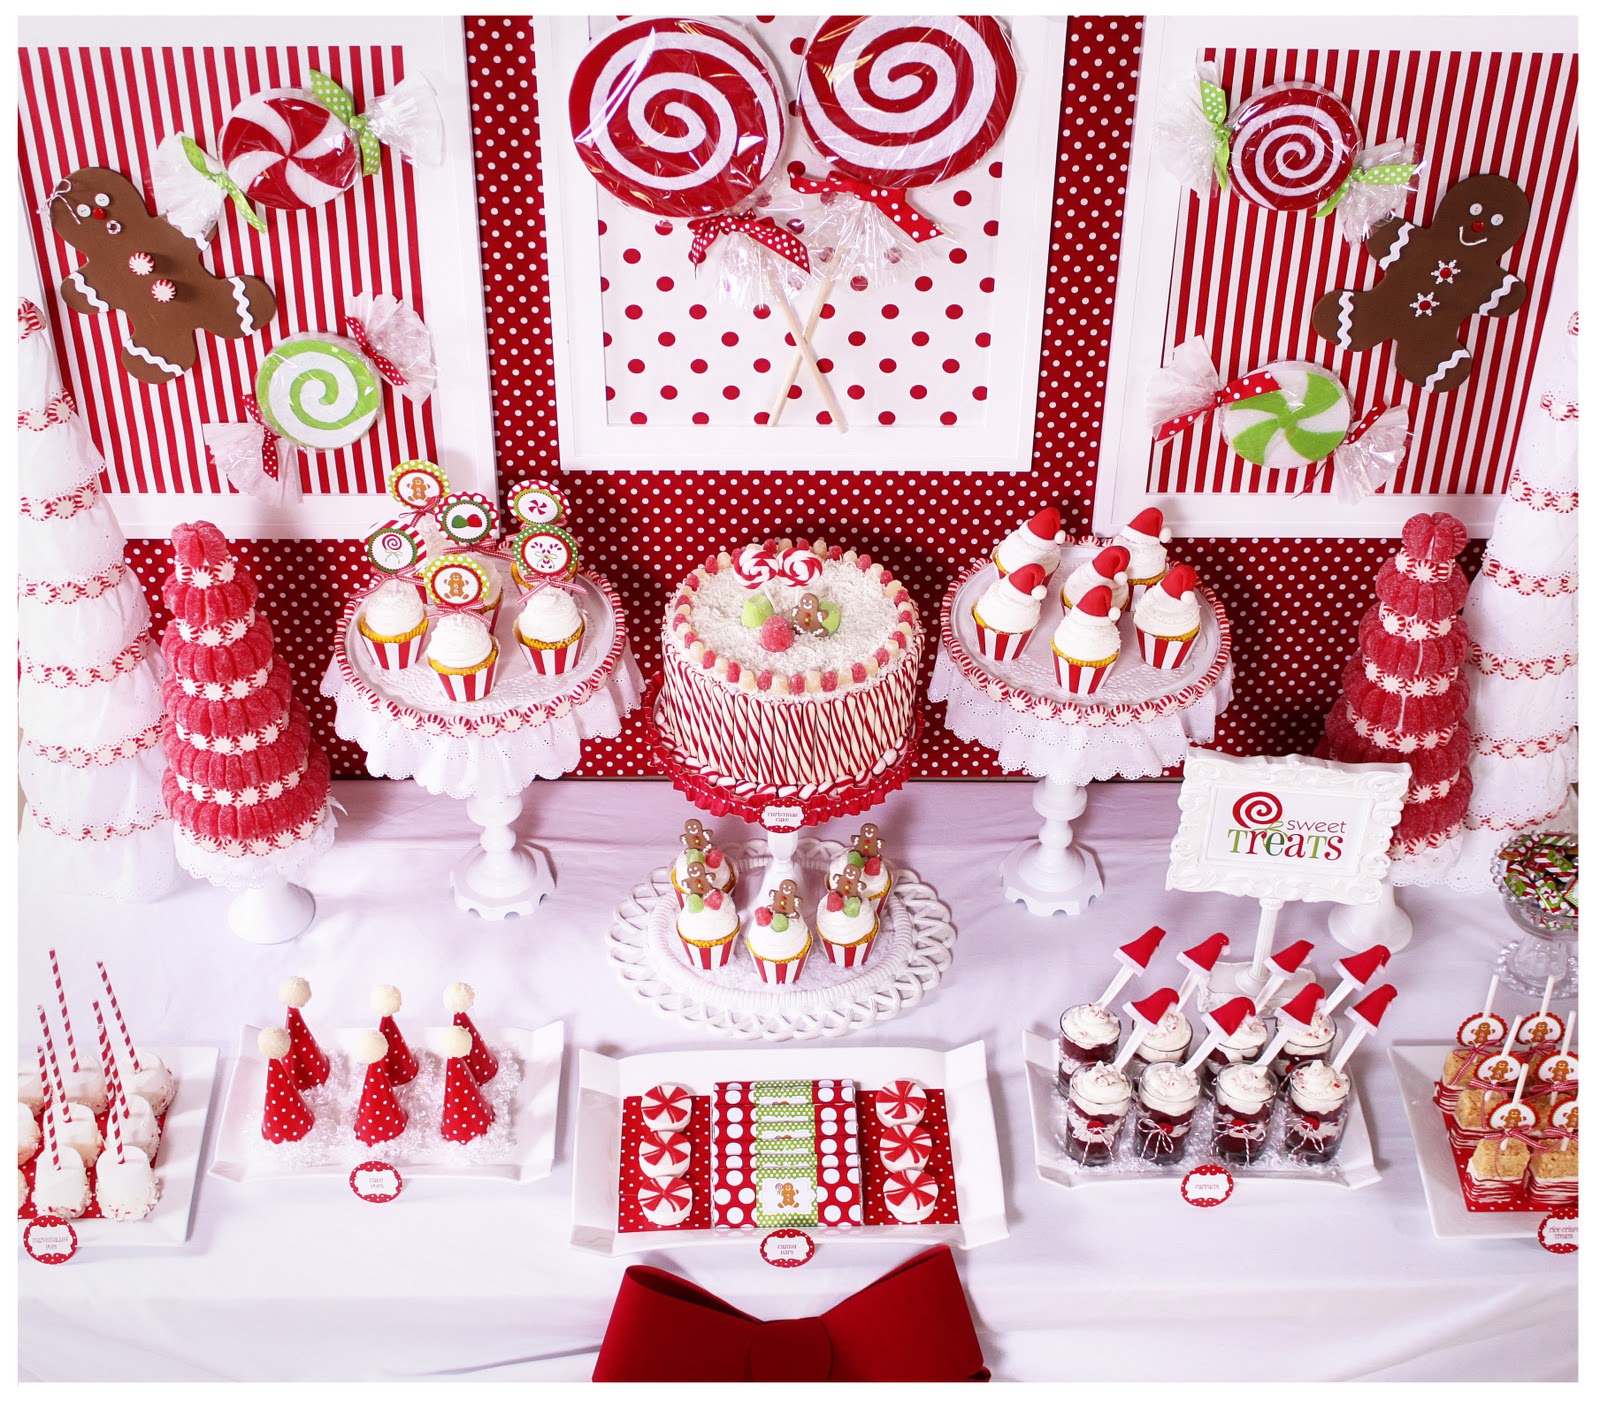 Kara 39 s party ideas candy land christmas party kara 39 s for Christmas holiday ideas